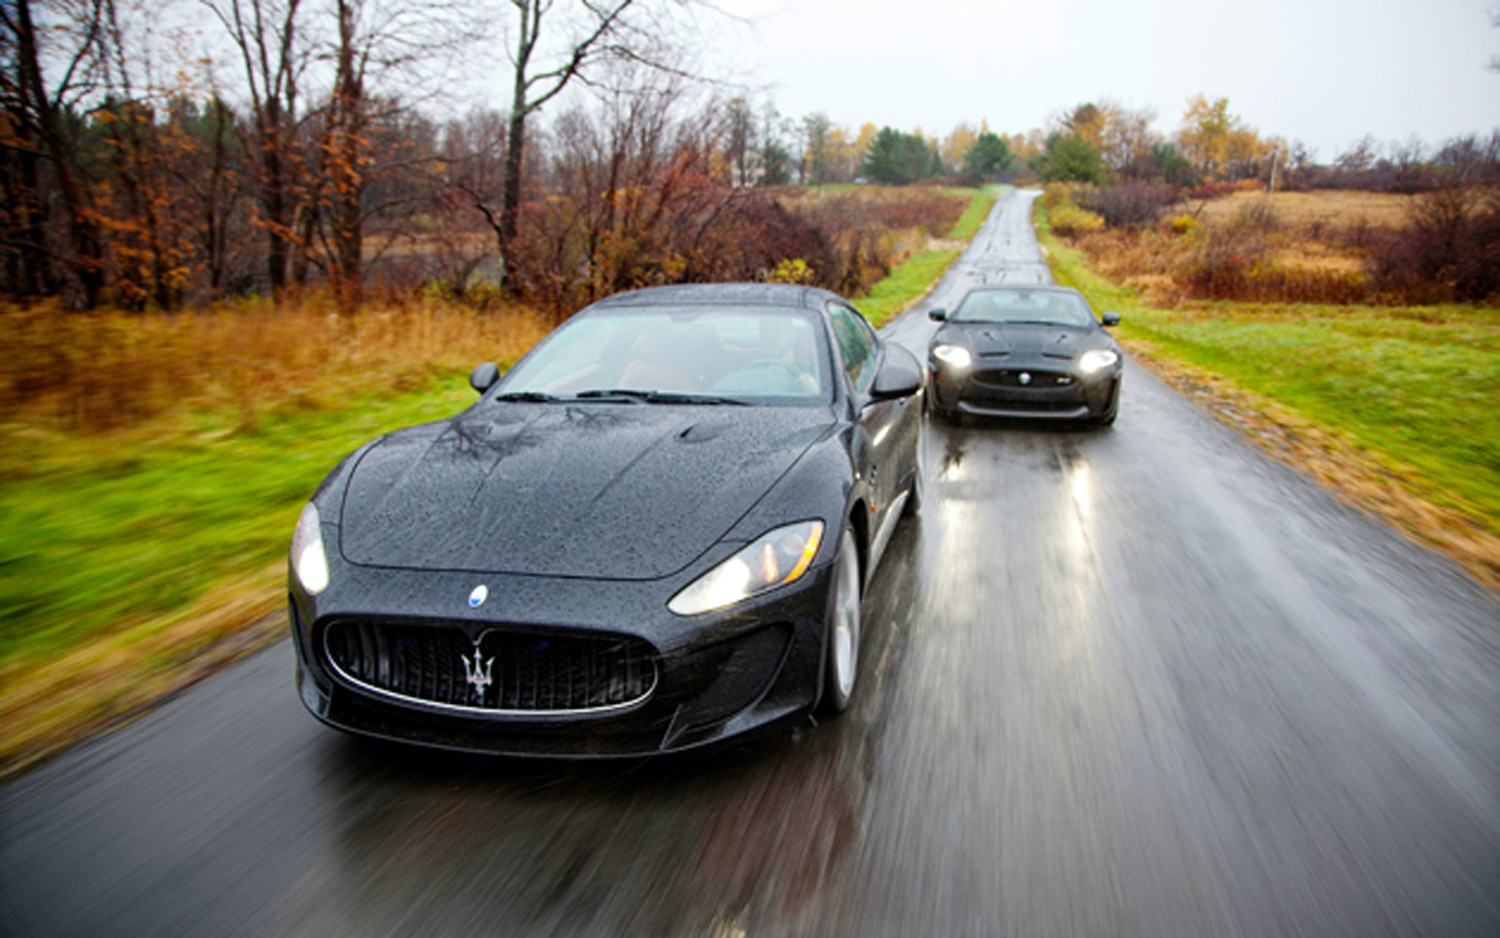 https://st.automobilemag.com/uploads/sites/11/2012/02/2012-maserati-GranTurismo-MC-front-left-view.jpg